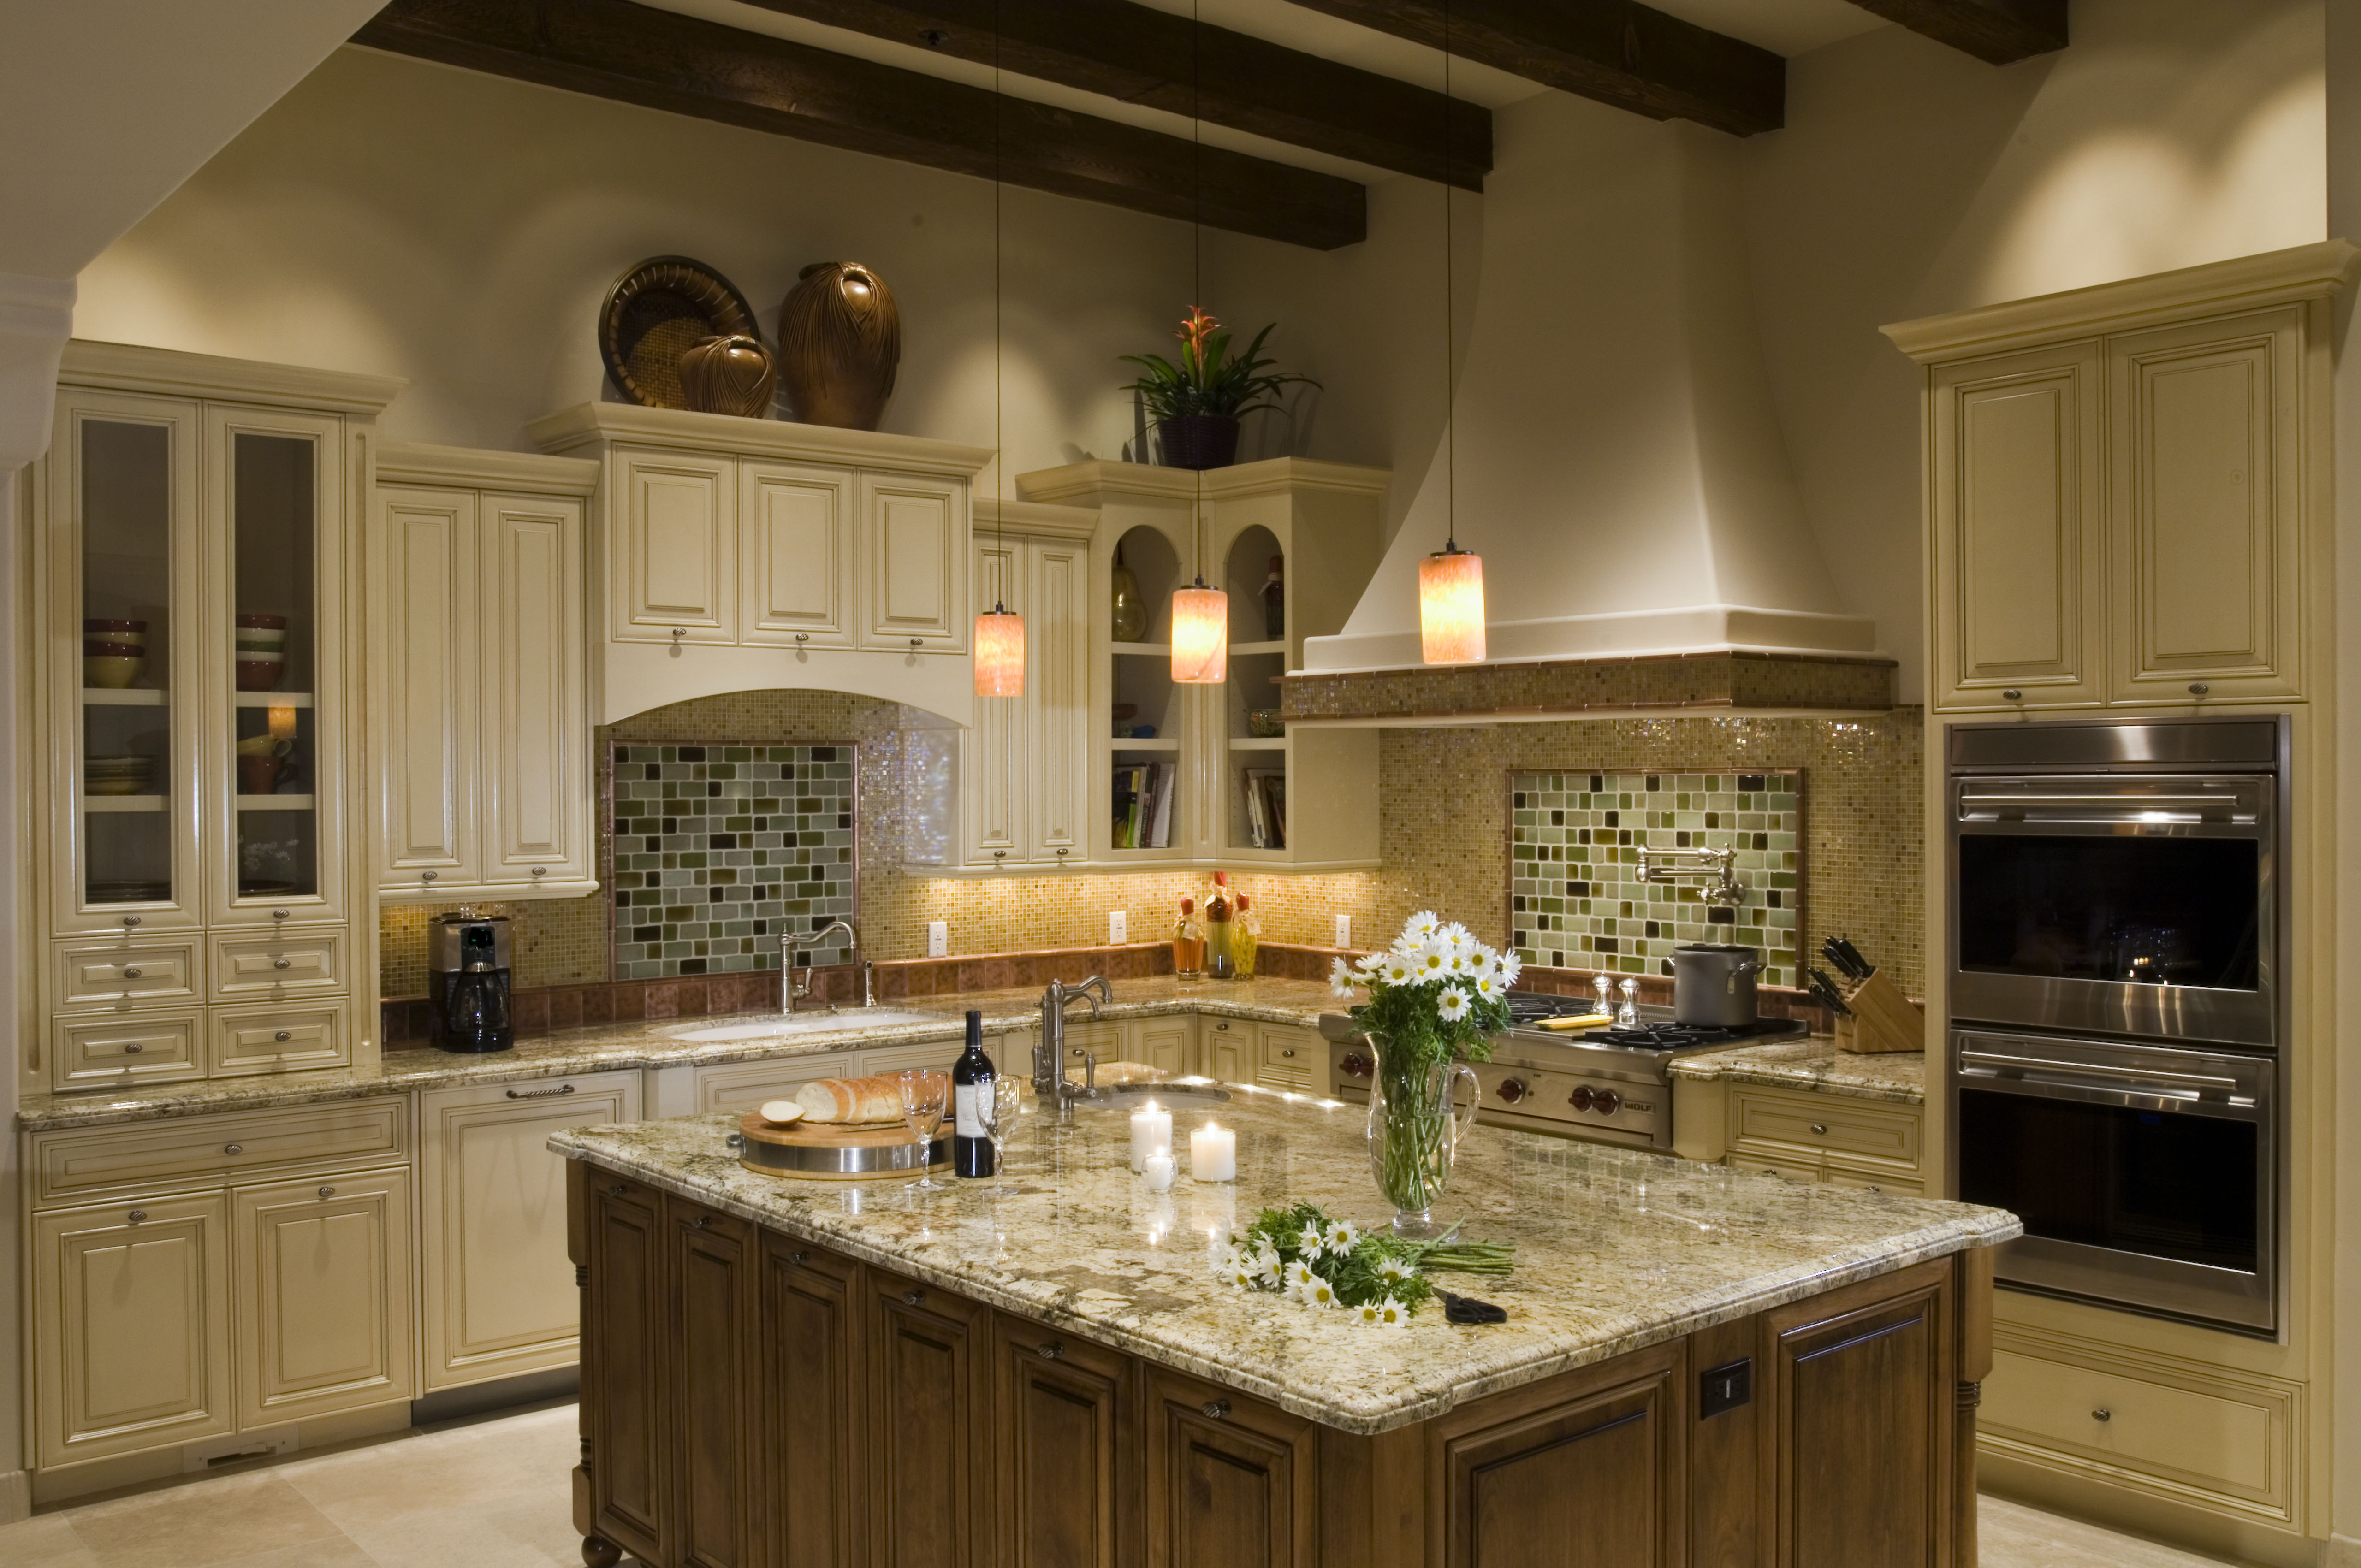 muddrealty remodeling kitchen cabinets